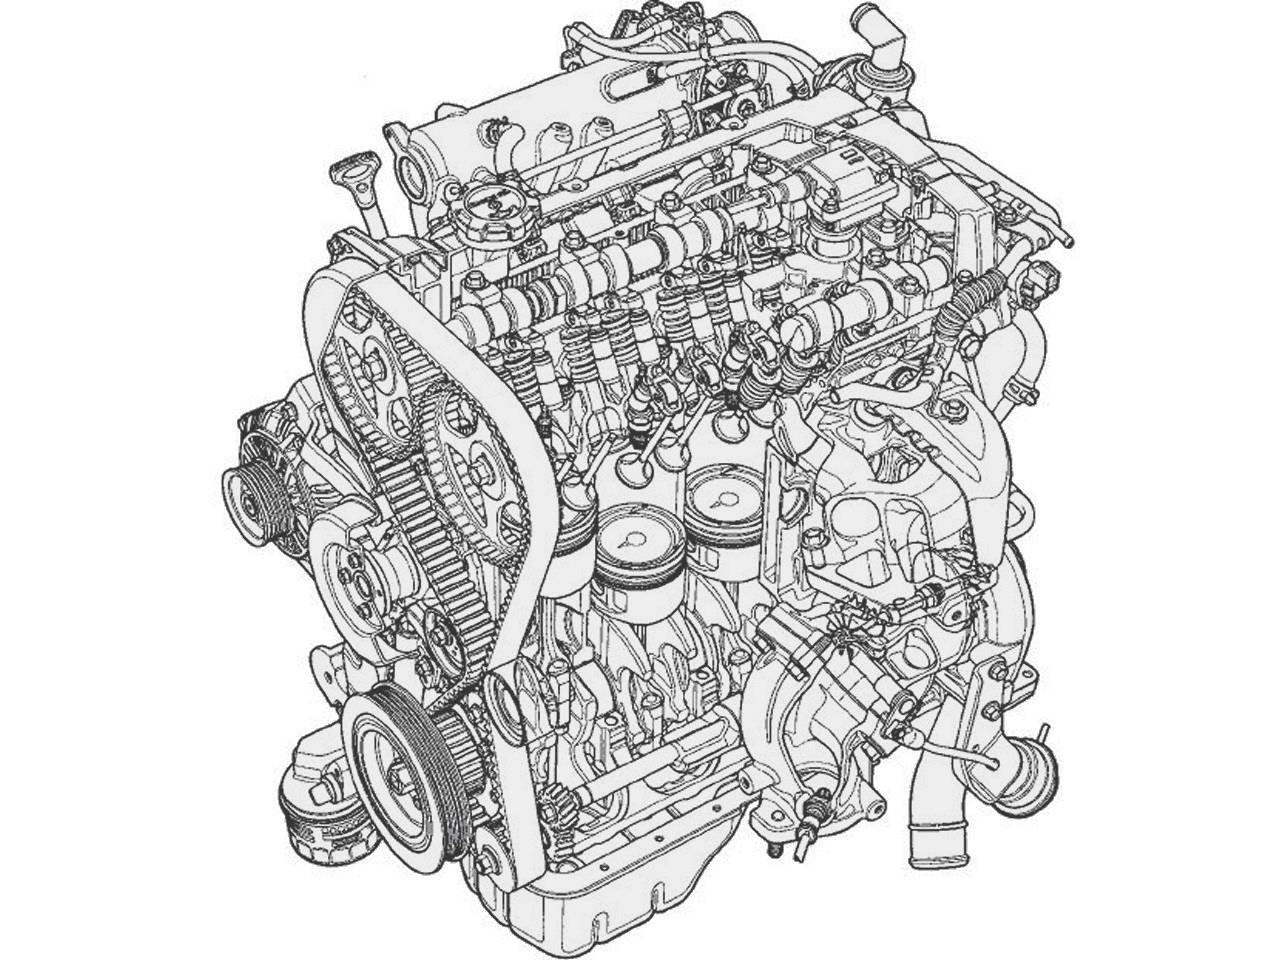 Diagram For 2009 Mitsubishi Lancer Engine Electrical 2010 Chevy Aveo Evolution Wrc04 Car Cutaway Modern Racer